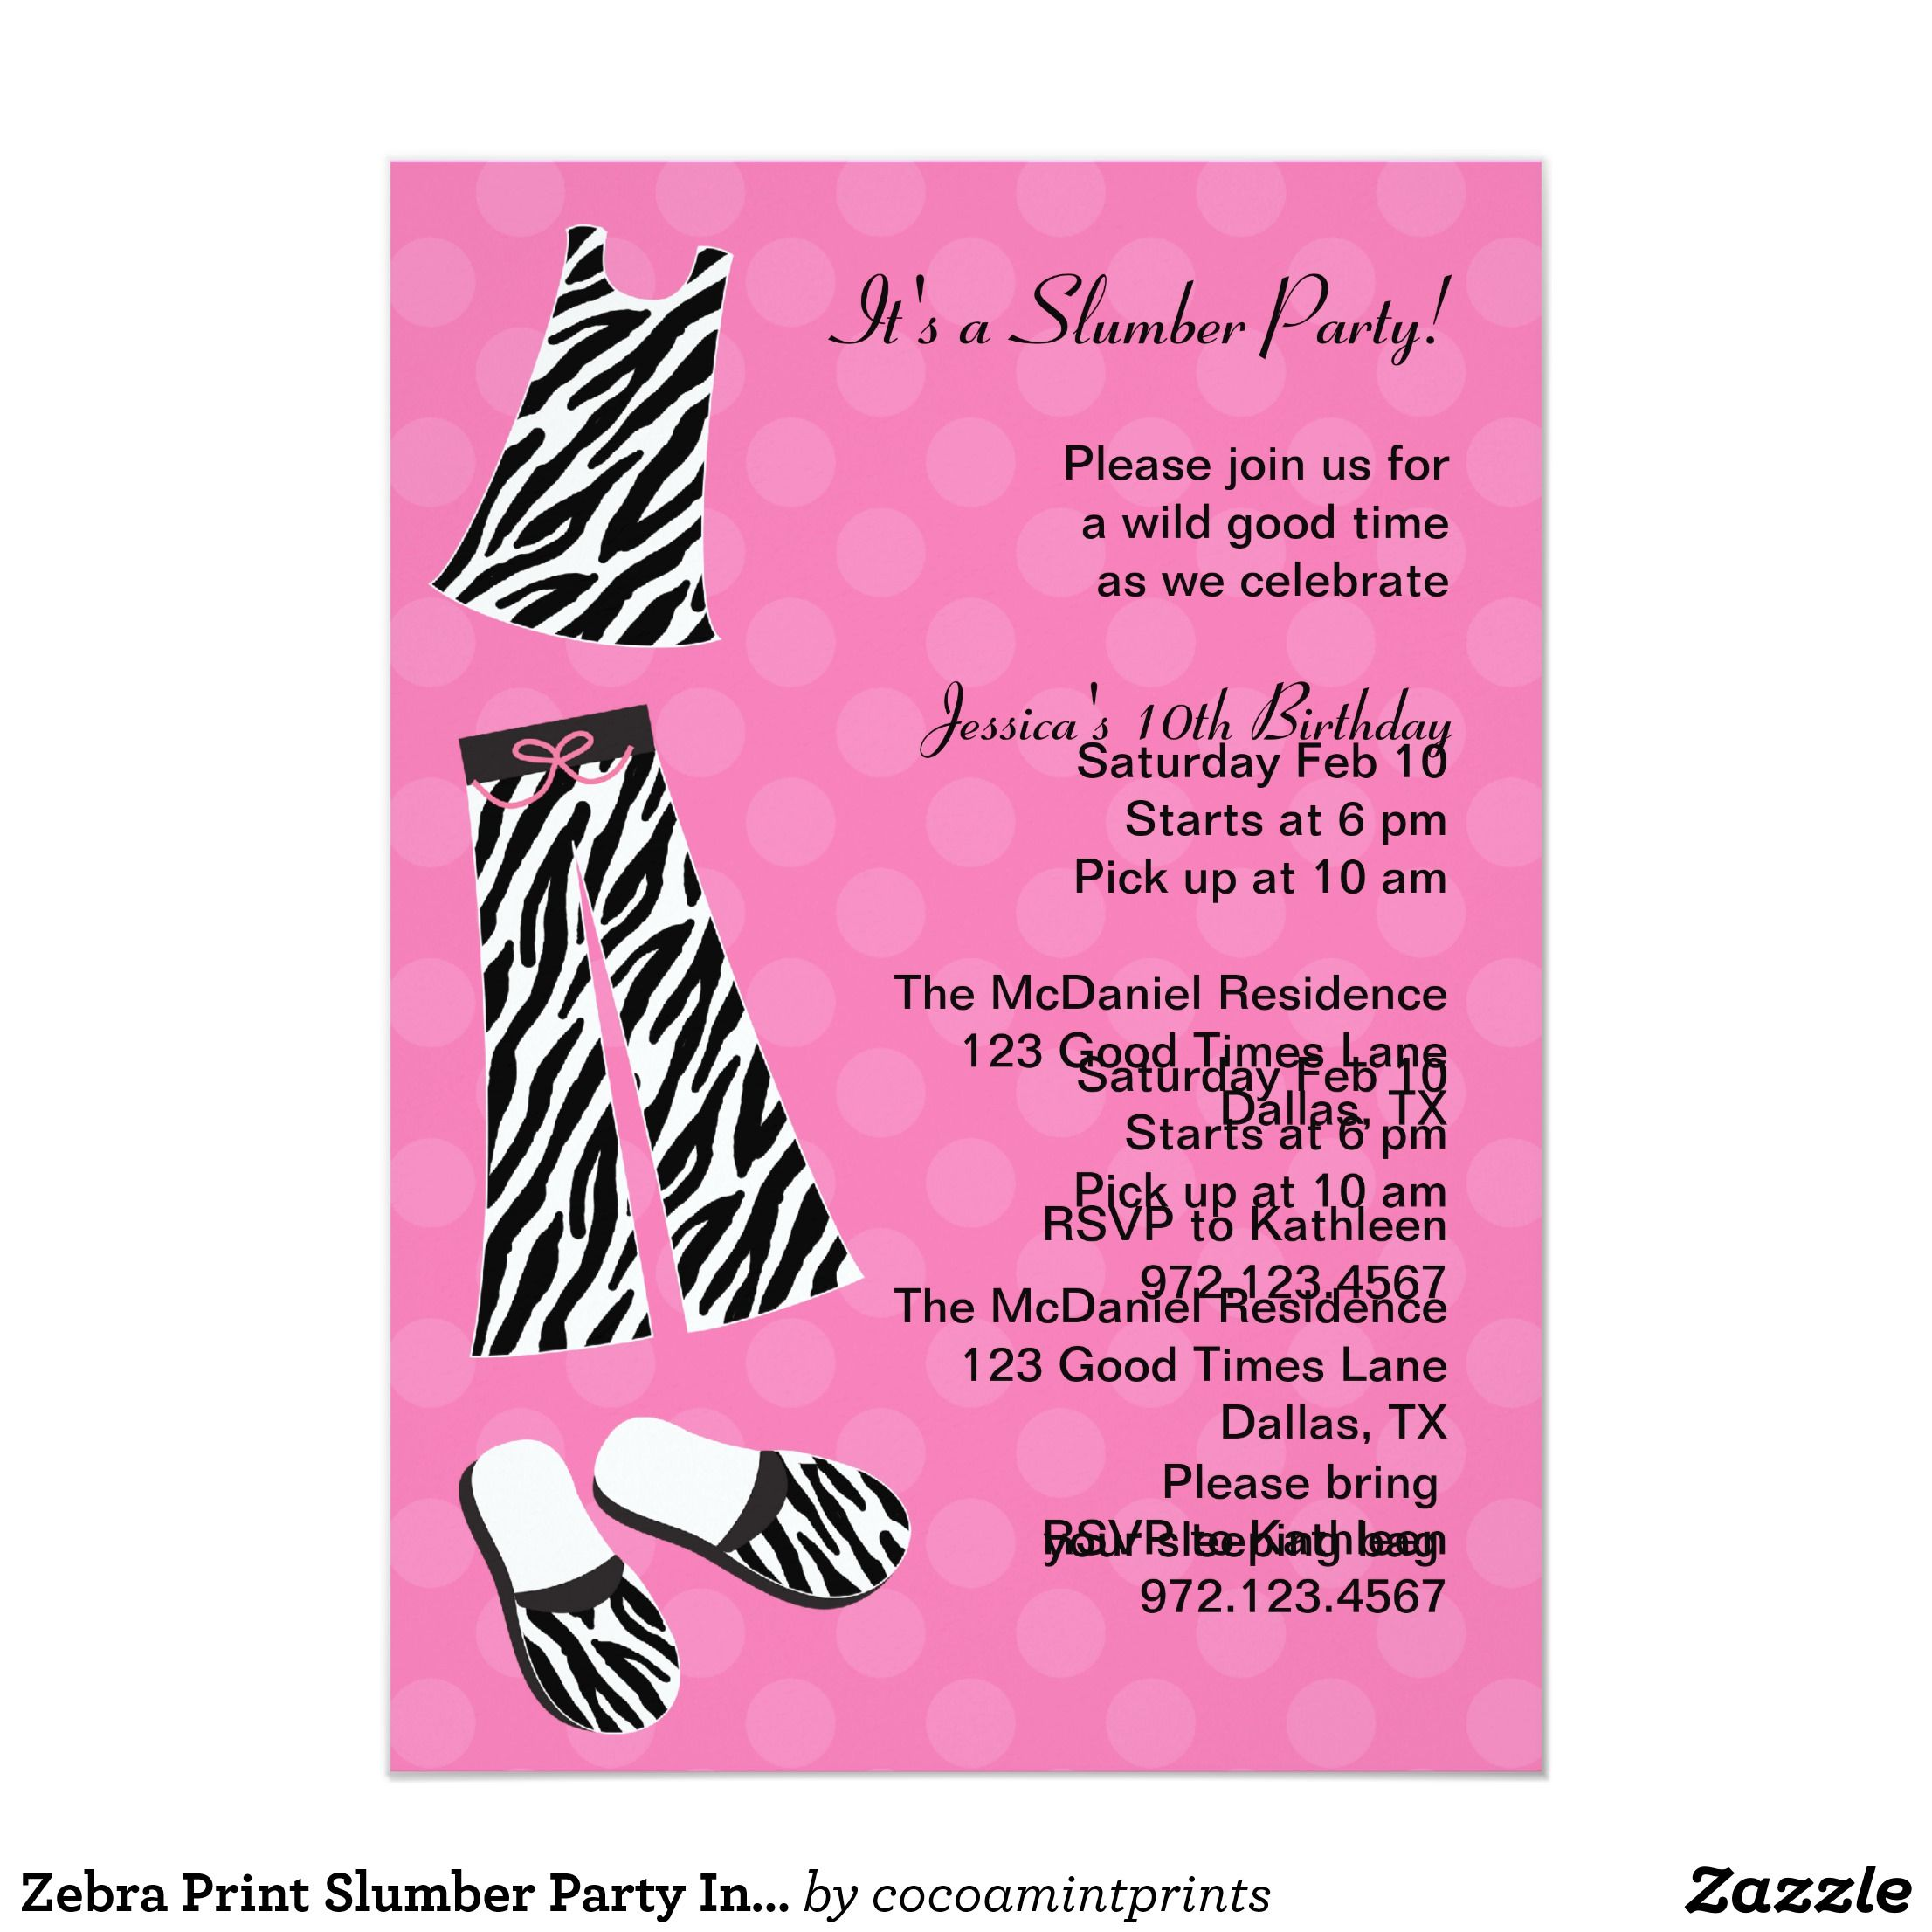 Zebra Print Slumber Party Invitations | Invitations | Pinterest ...